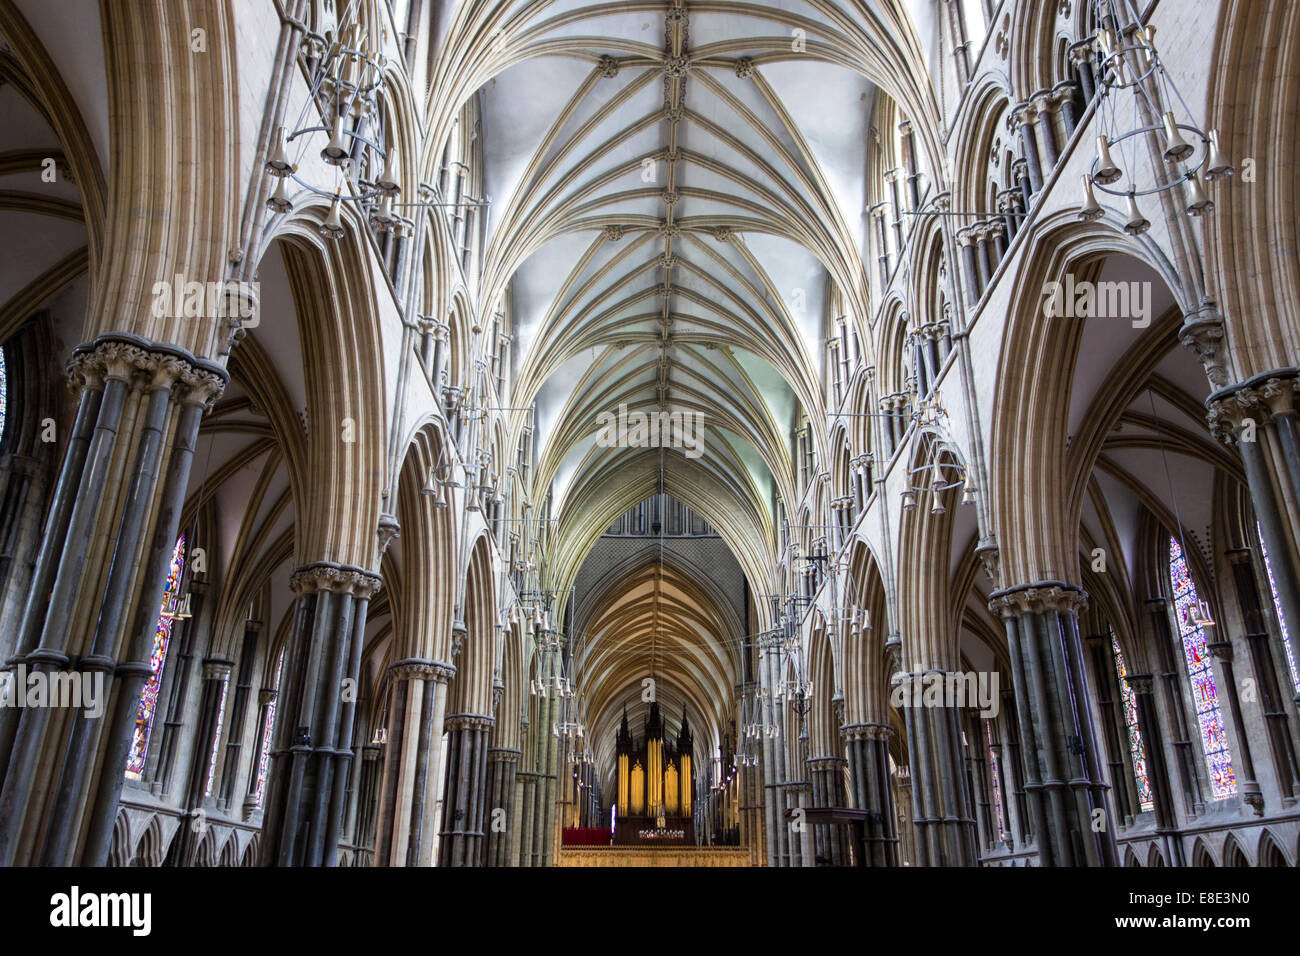 Thirteenth century nave of Lincoln Cathedral early English Gothic style in  Lincoln, Lincs, East Midlands United Kingdom